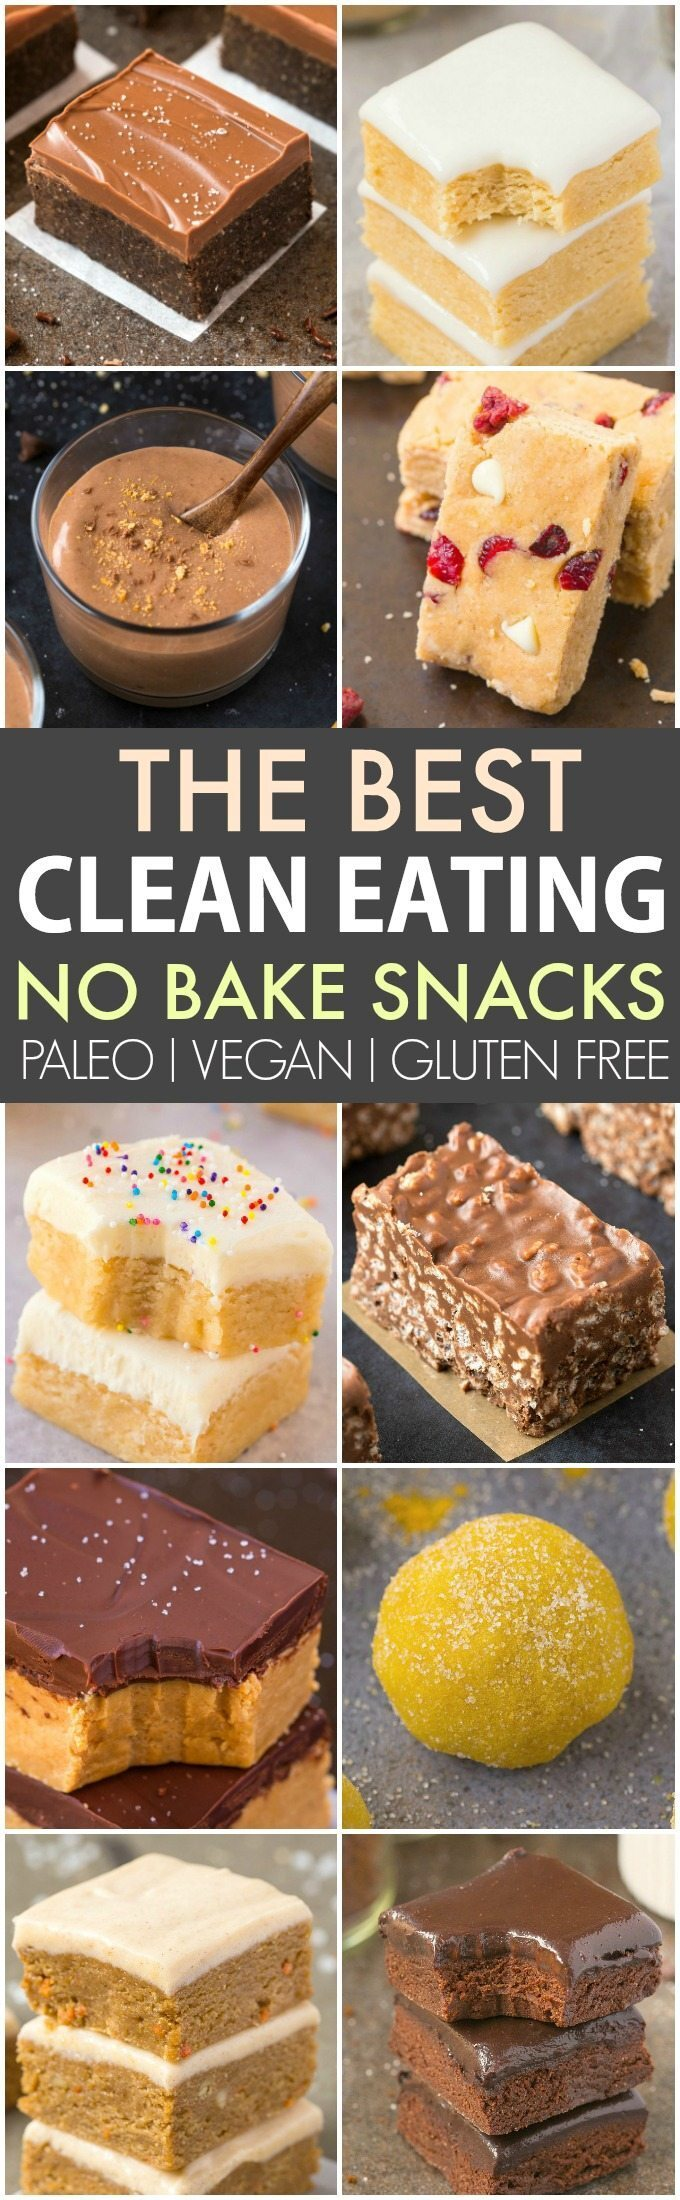 The Best Healthy Clean Eating No Bake Snacks (Paleo, Vegan, Gluten Free)